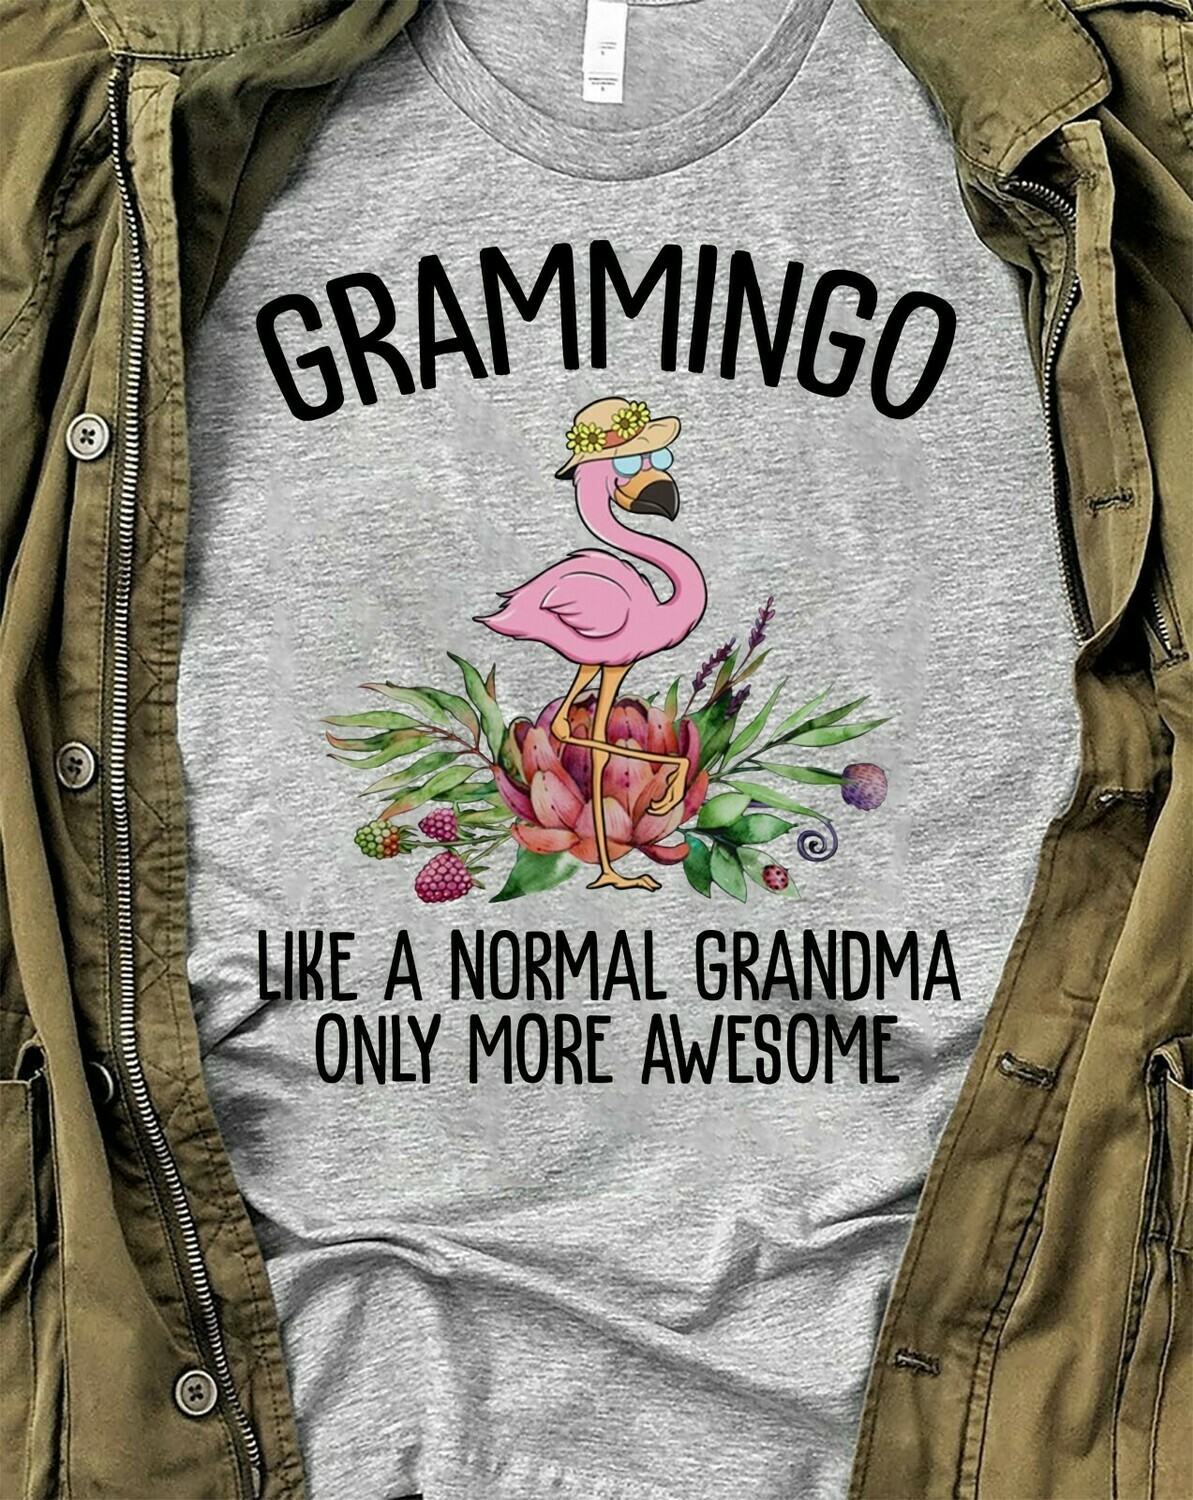 Flamingo Grammingo Like a normal grandma only more awesome Gifts T-Shirts for Nana Grandmother Mother Mom Family Vacation Shirt Tee Long Sleeve Sweatshirt Hoodie Jolly Family Gifts